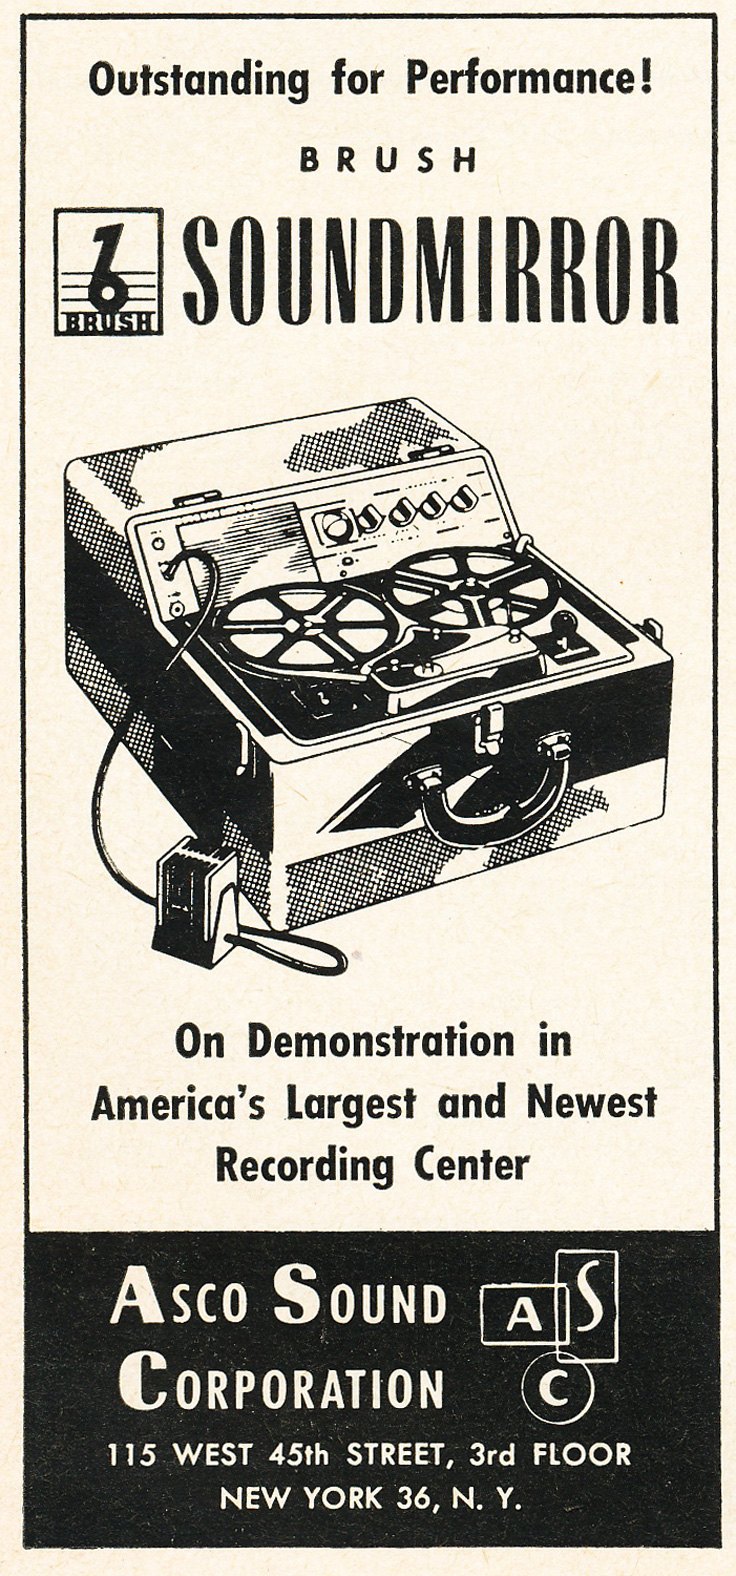 1953 ASC Brush reel tape recorder ad in Reel2ReelTexas.com's vintage recording collection